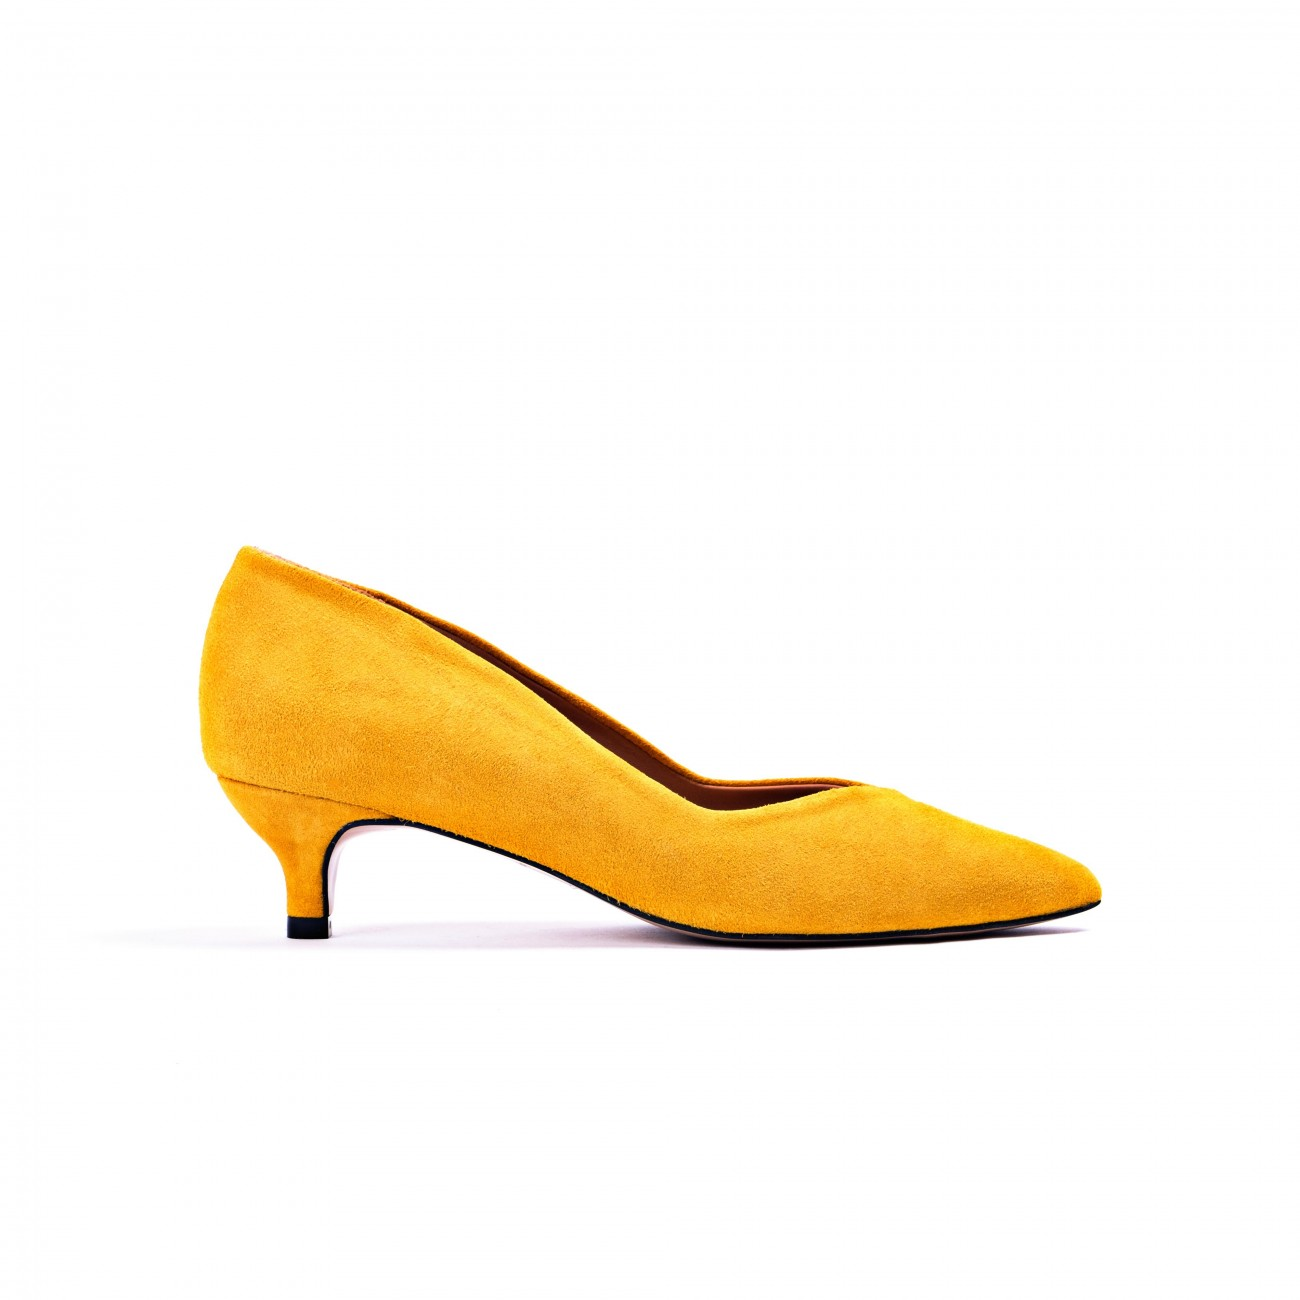 Landi suede yellow